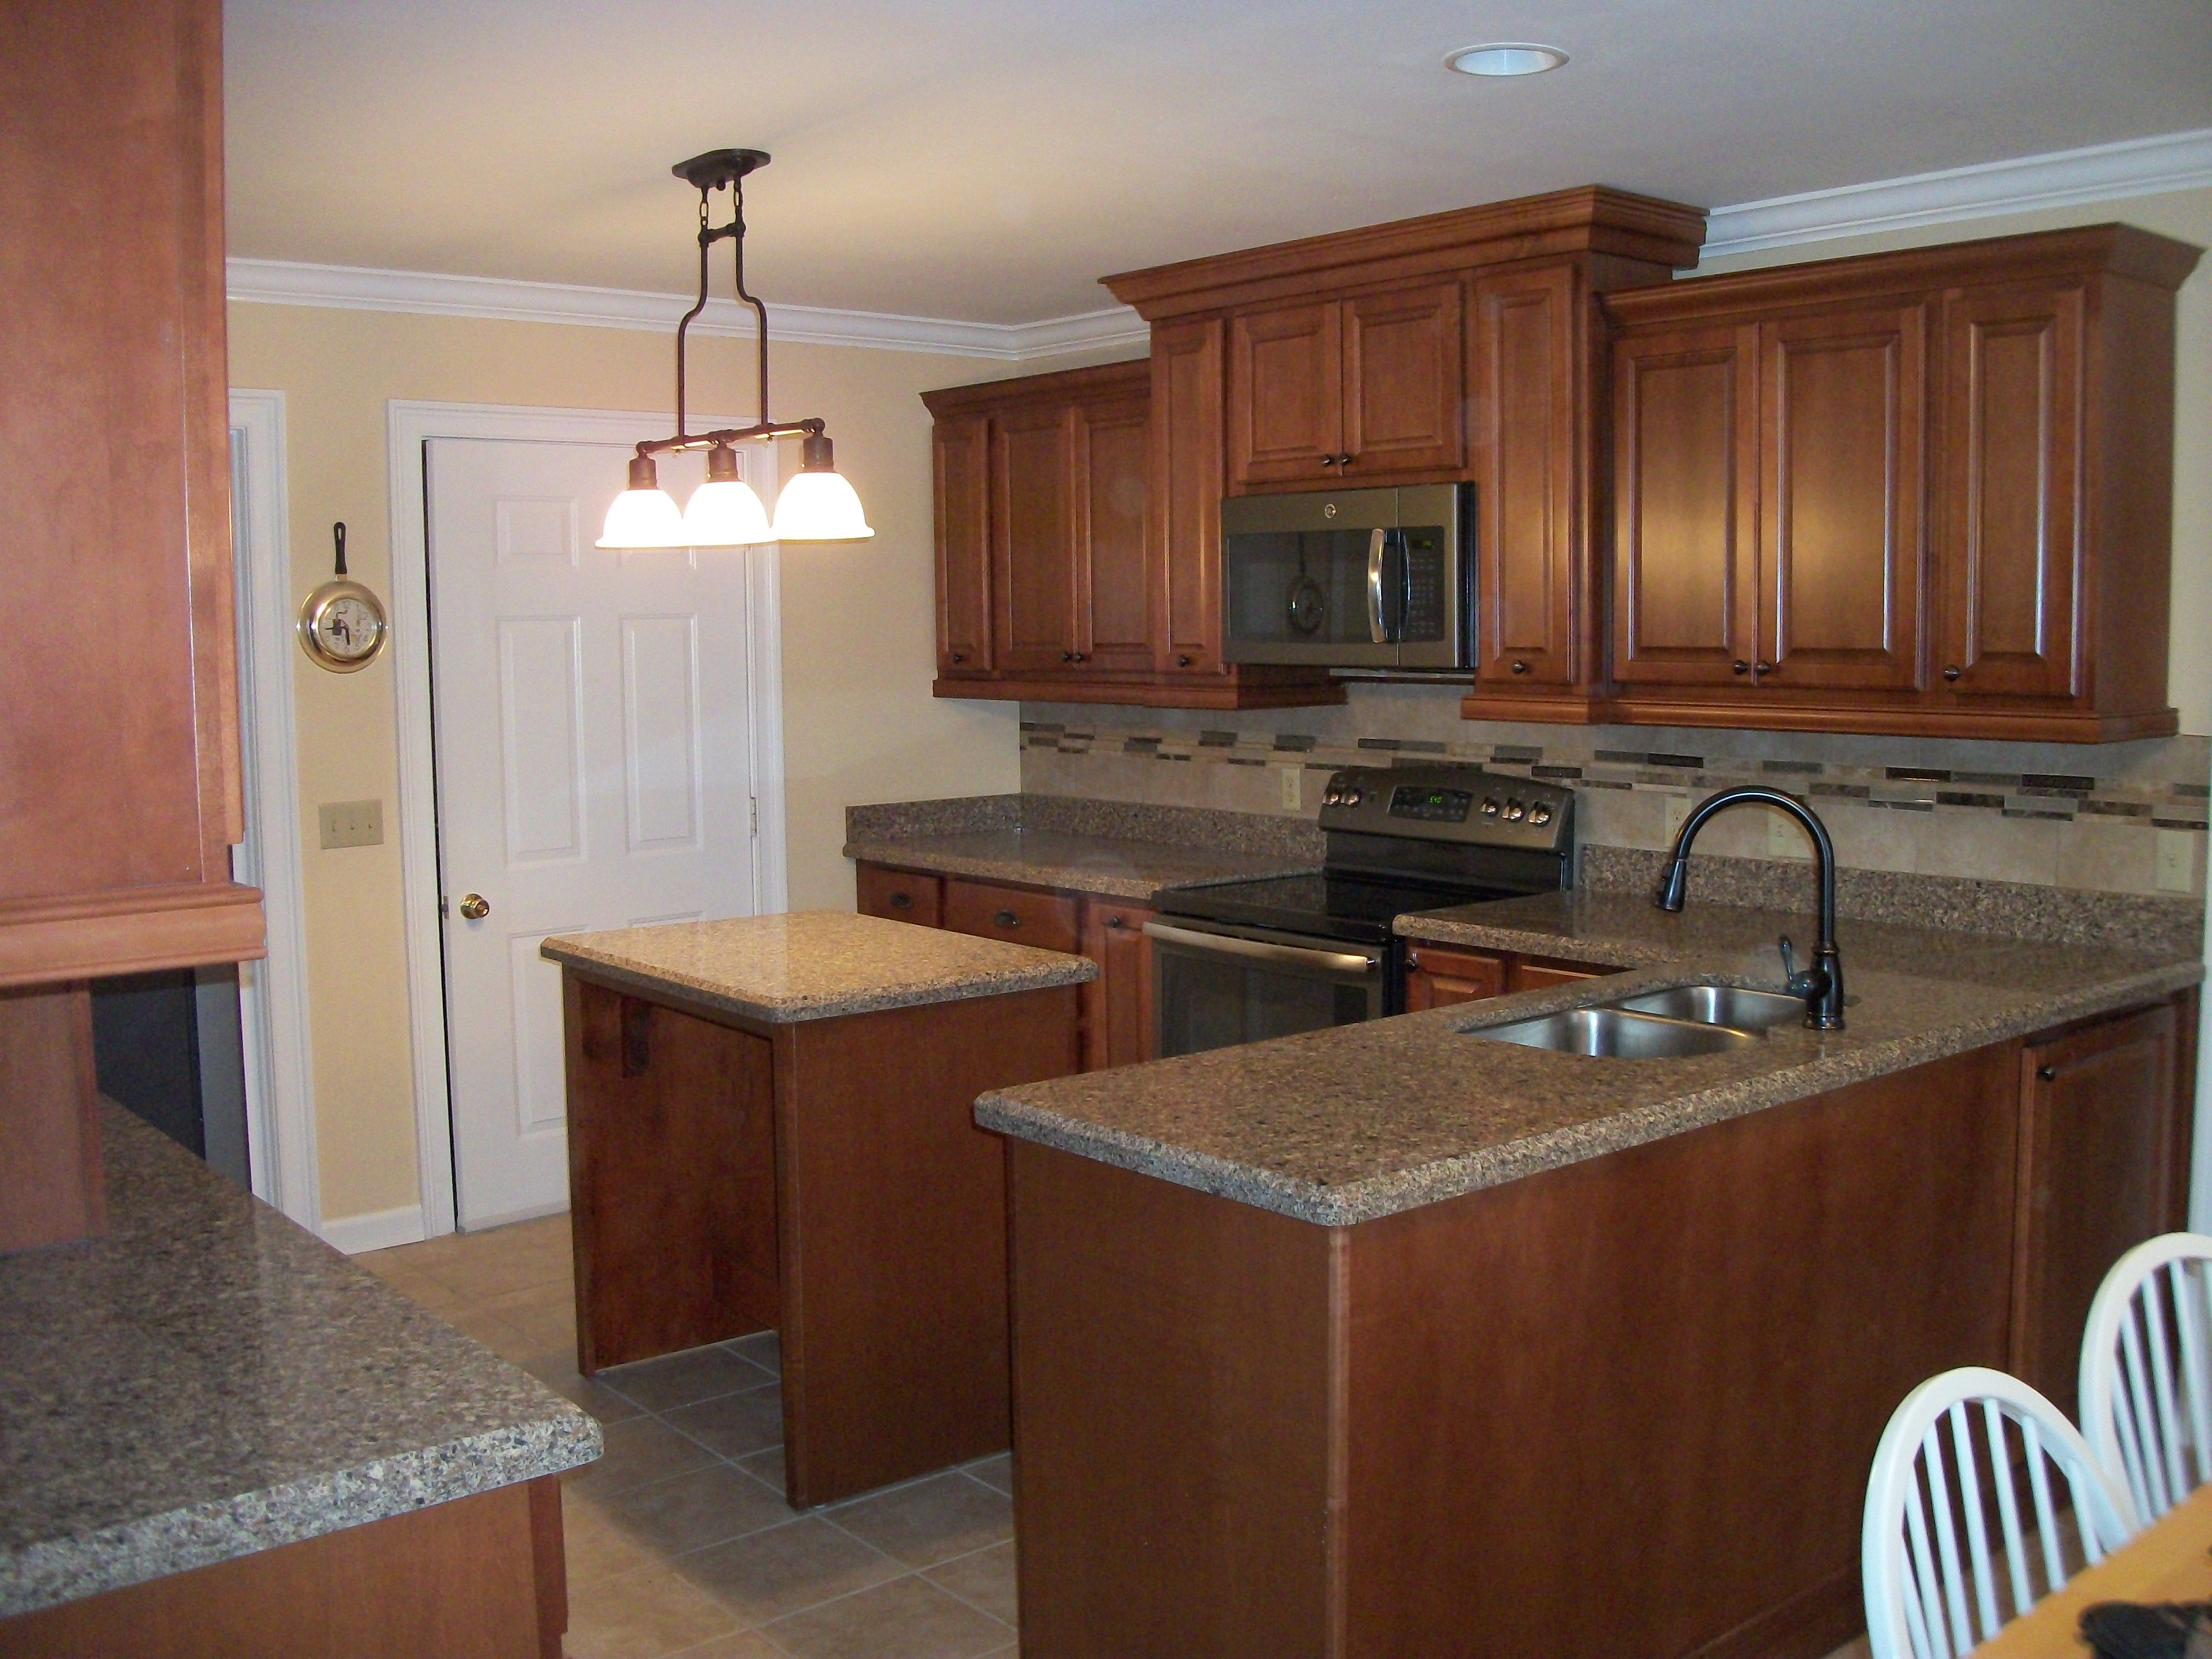 Remodeled kitchen features maple cabinetry quartz countertops